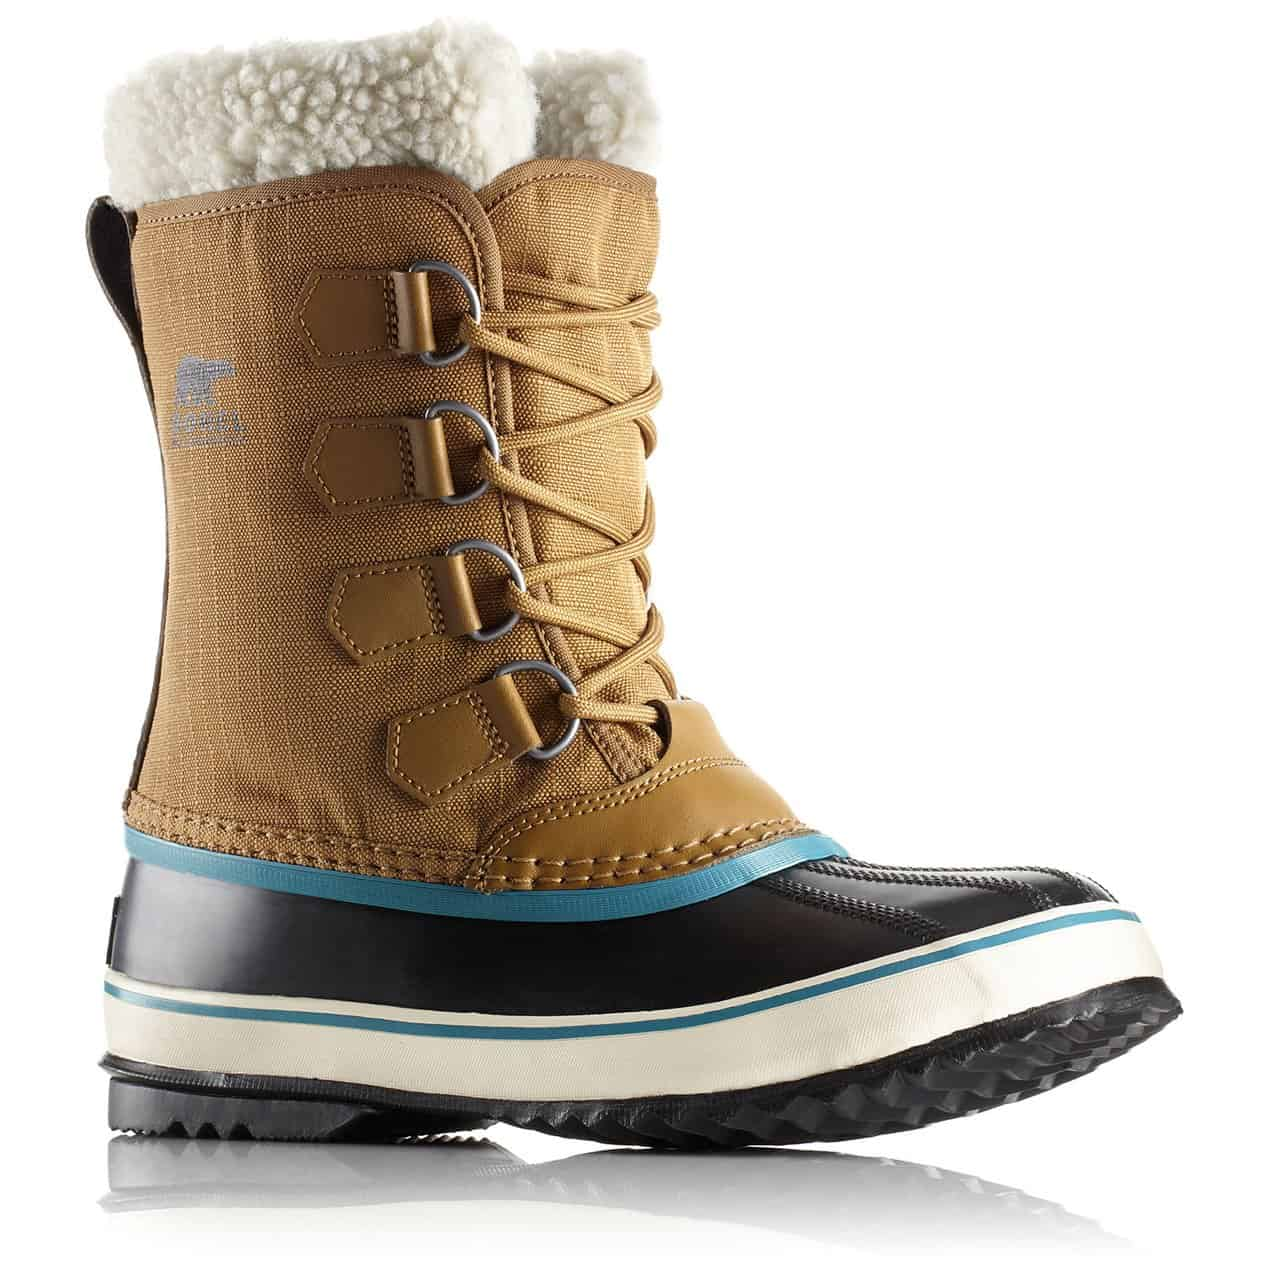 4d3422ae2b6 How to Choose the Ideal Winter Boots - Altitude Sports